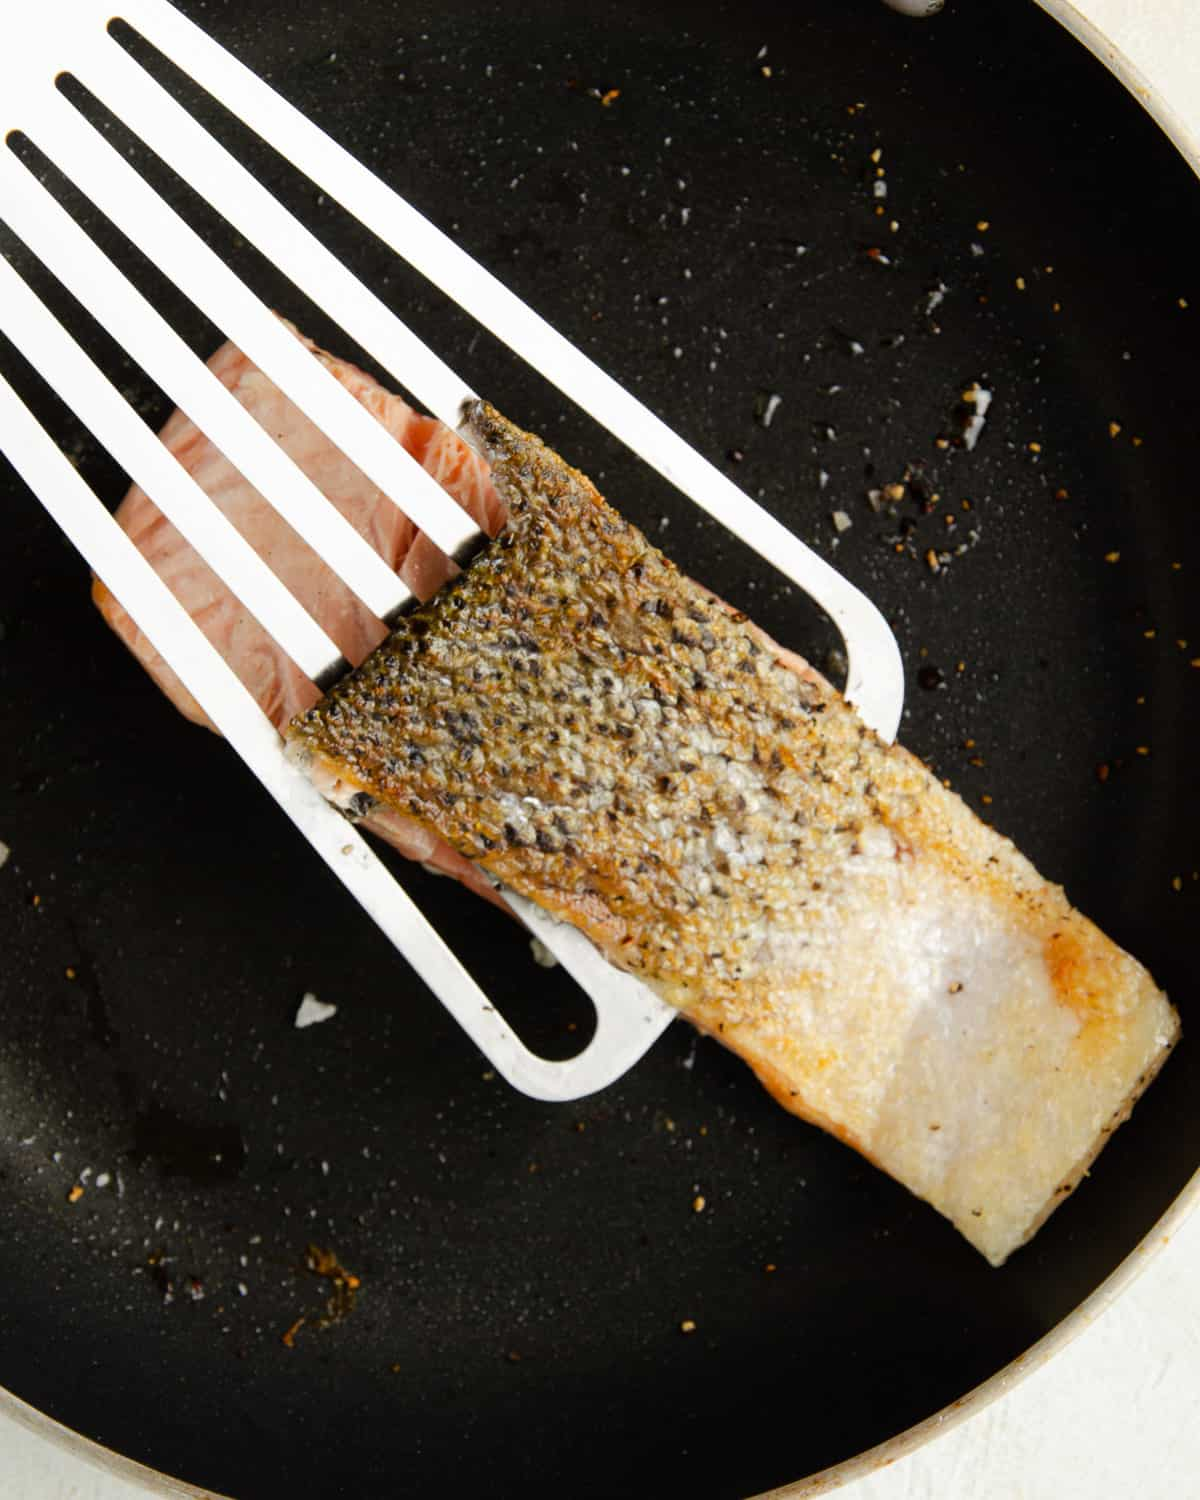 Removing the skin off the salmon filet by sliding the spatula between the skin and filet.